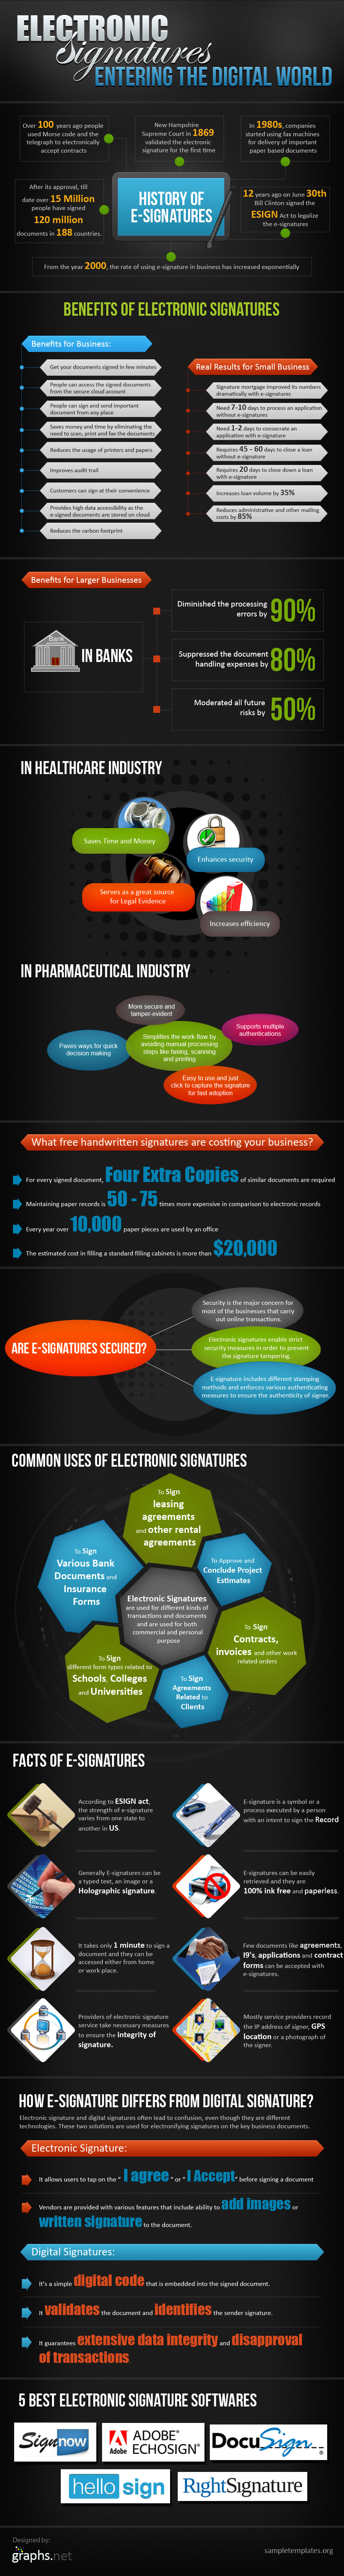 Electronic Signatures - Entering The Digital World (Infographic)